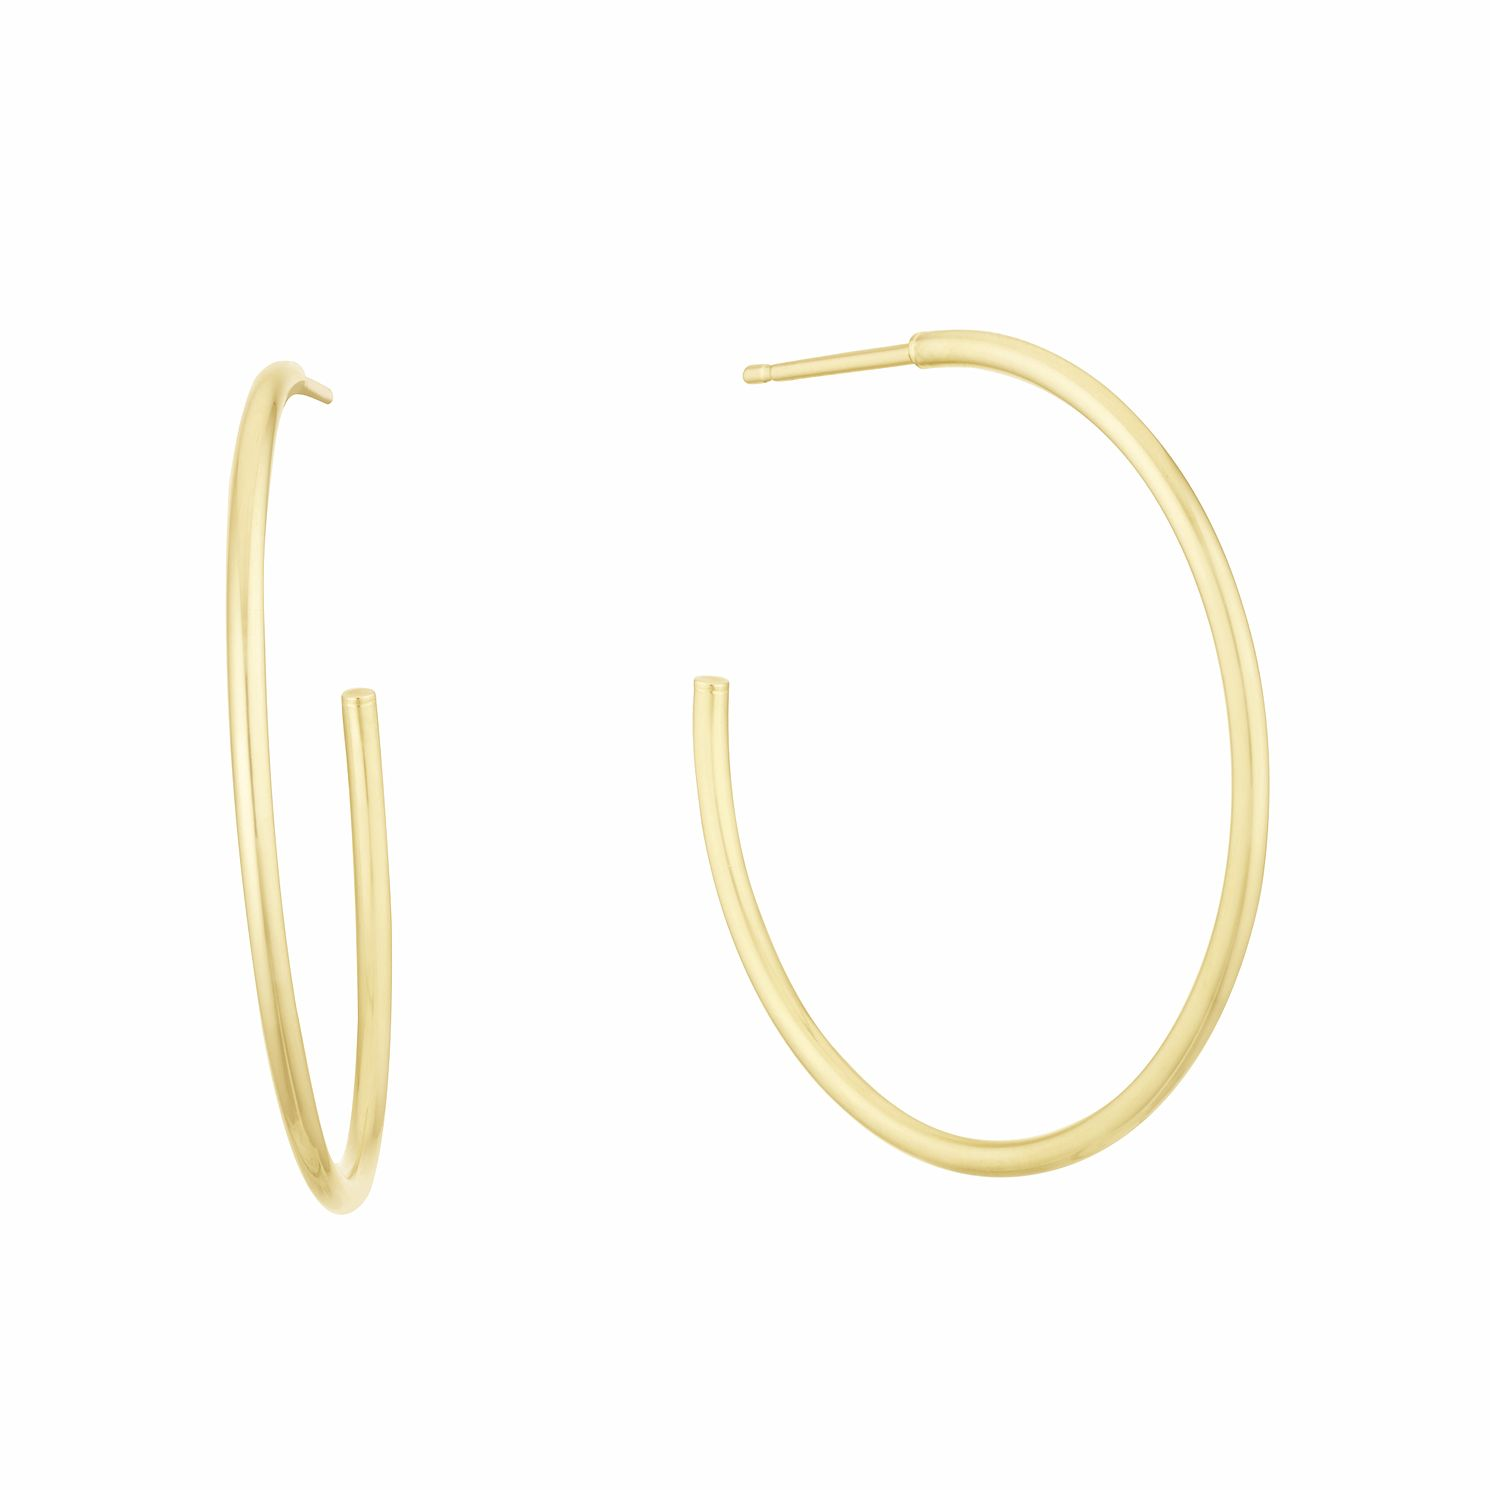 9ct Yellow Gold 30mm Skinny Hoop Earrings - Product number 3164799